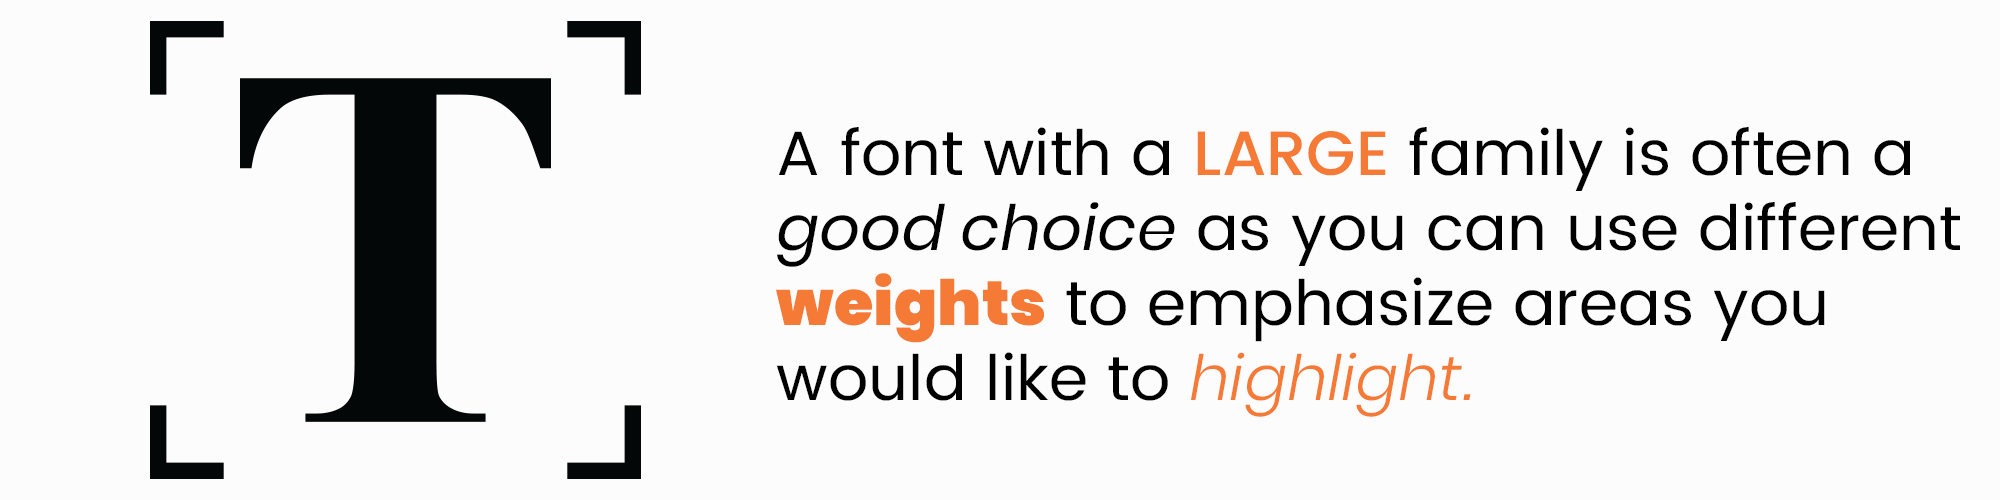 A font with a large family is often a good choice as you can use different weights to emphasize areas you would like to highlight.